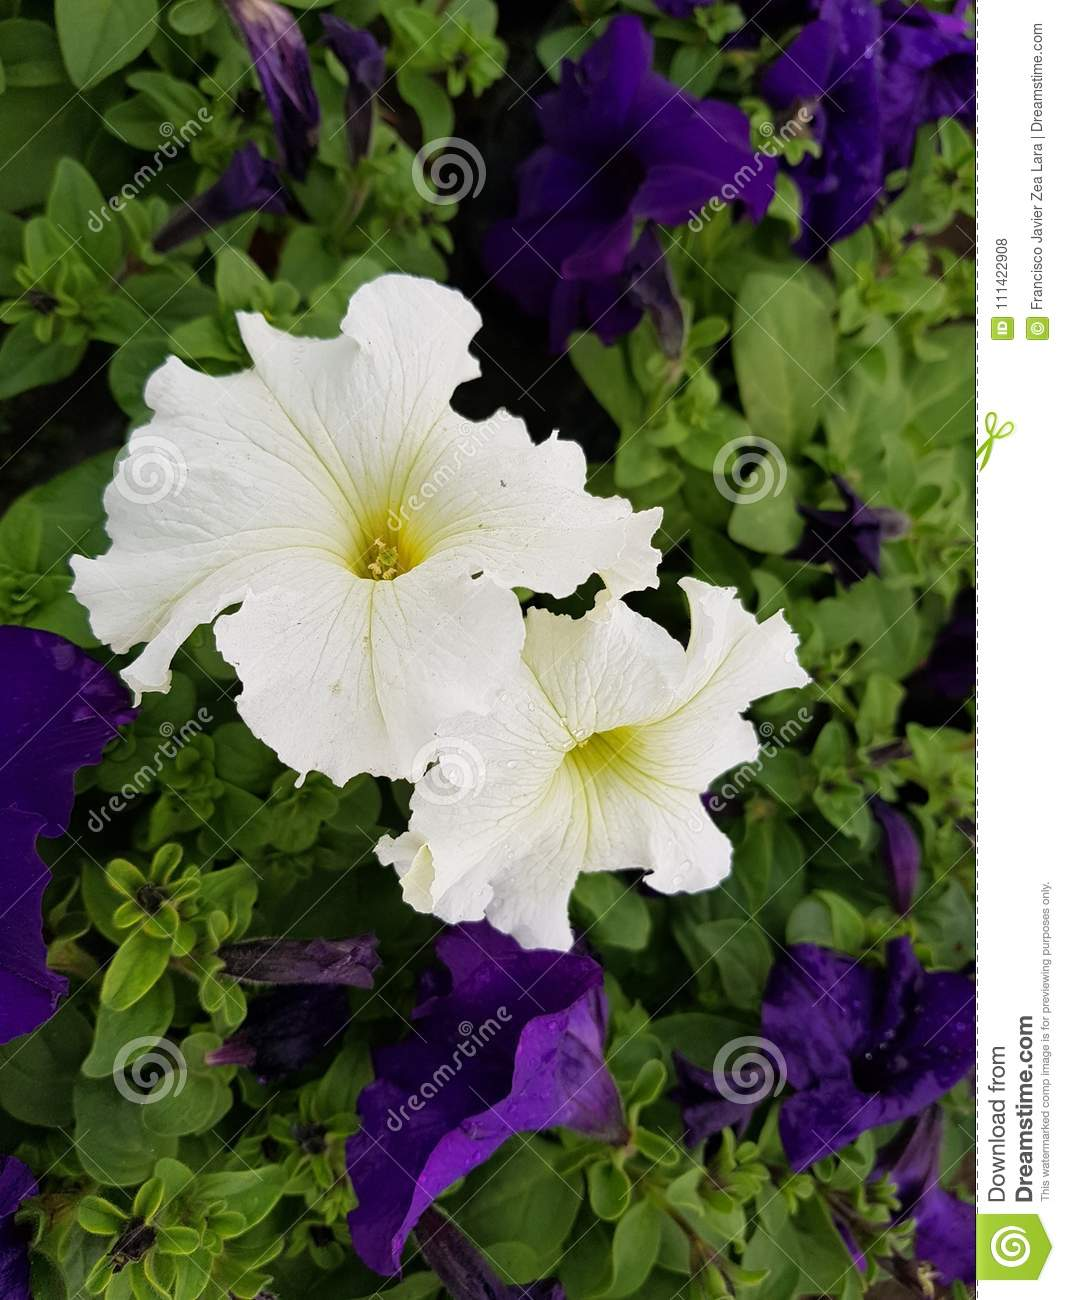 Two White Petunia Flowers In Garden Stock Photo Image Of Natural